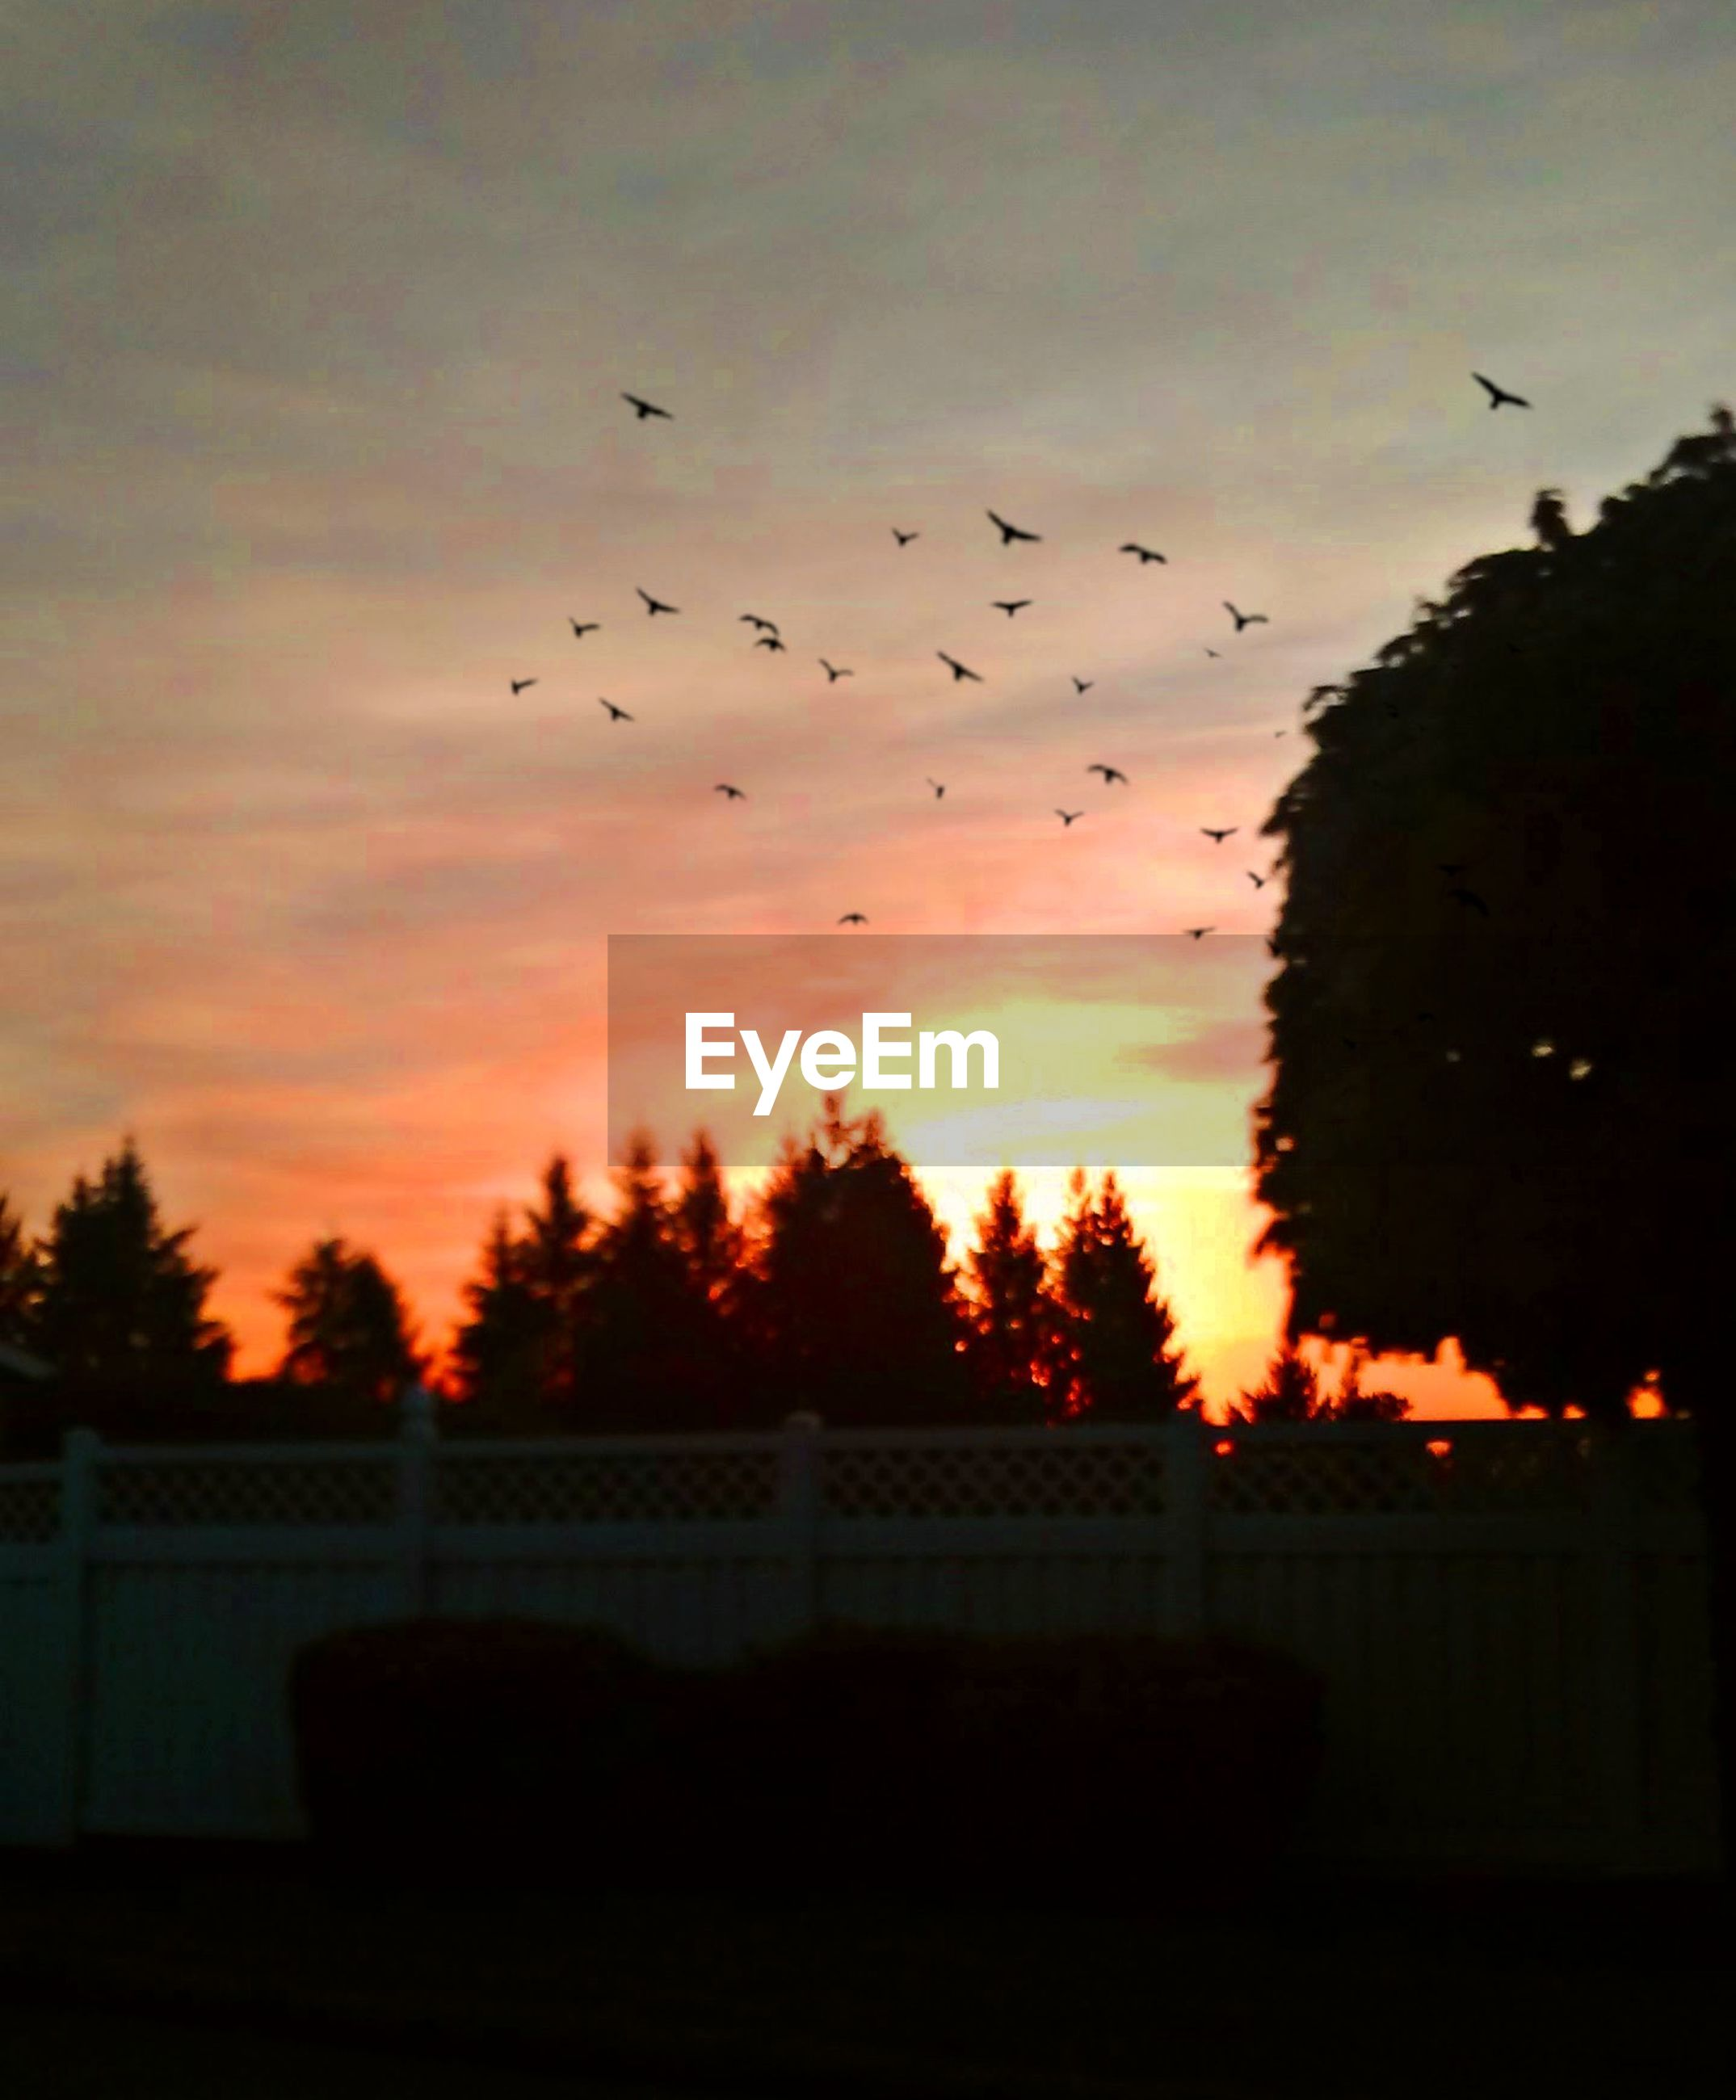 sky, bird, sunset, silhouette, animal themes, animal, large group of animals, vertebrate, flying, tree, cloud - sky, group of animals, animal wildlife, flock of birds, nature, animals in the wild, no people, plant, beauty in nature, orange color, ominous